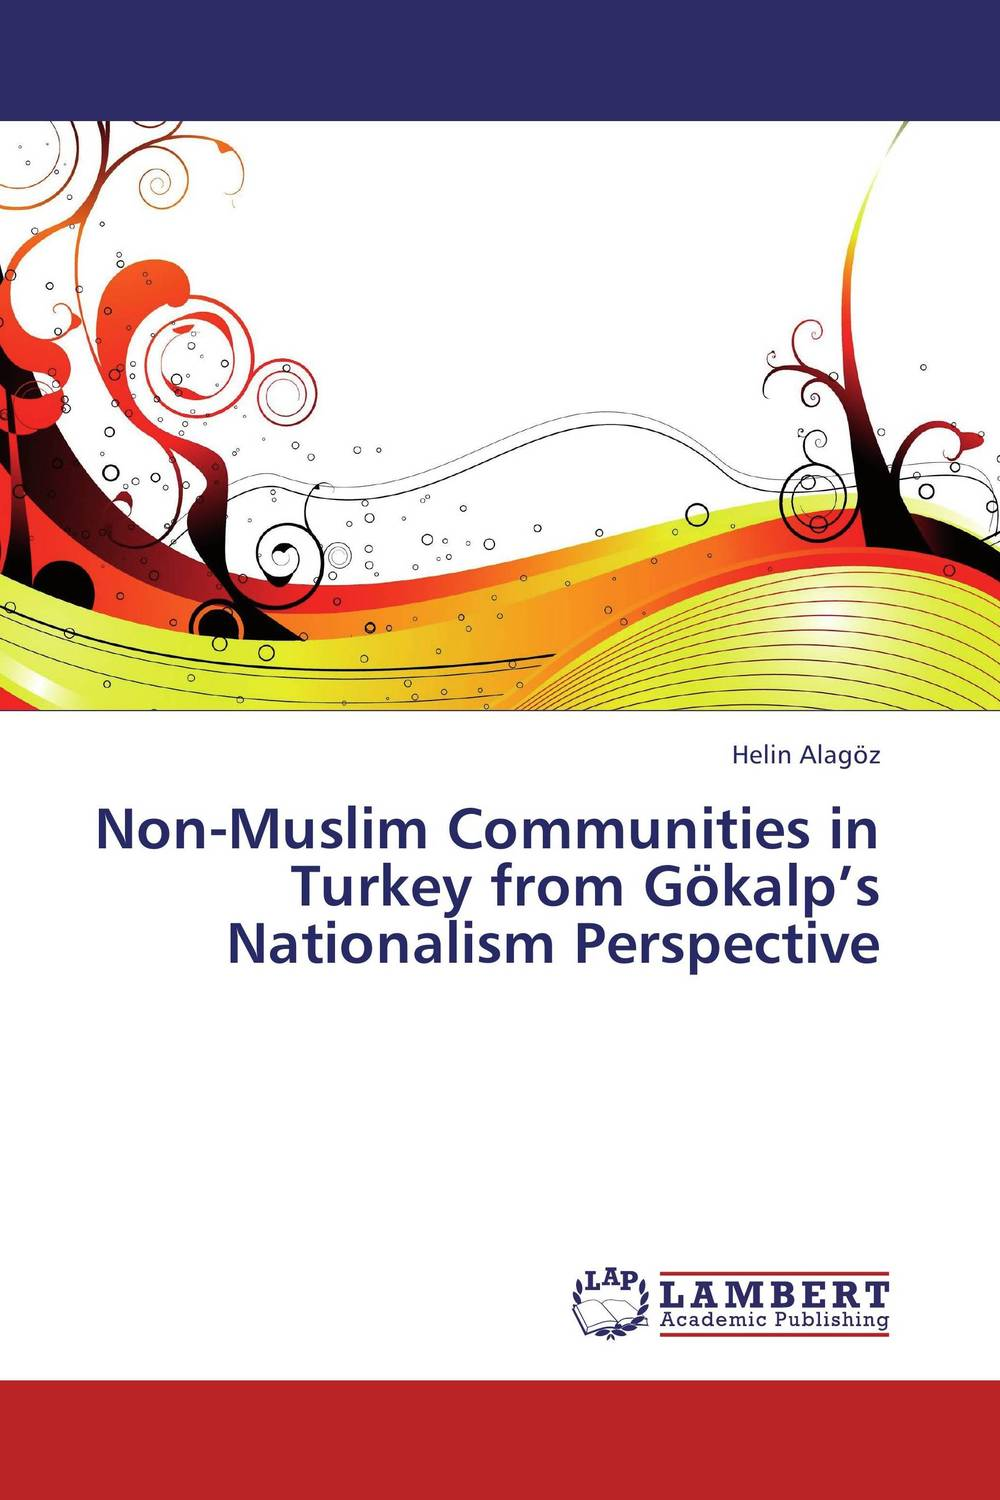 Non-Muslim Communities in Turkey from Gokalp's Nationalism Perspective nationalism